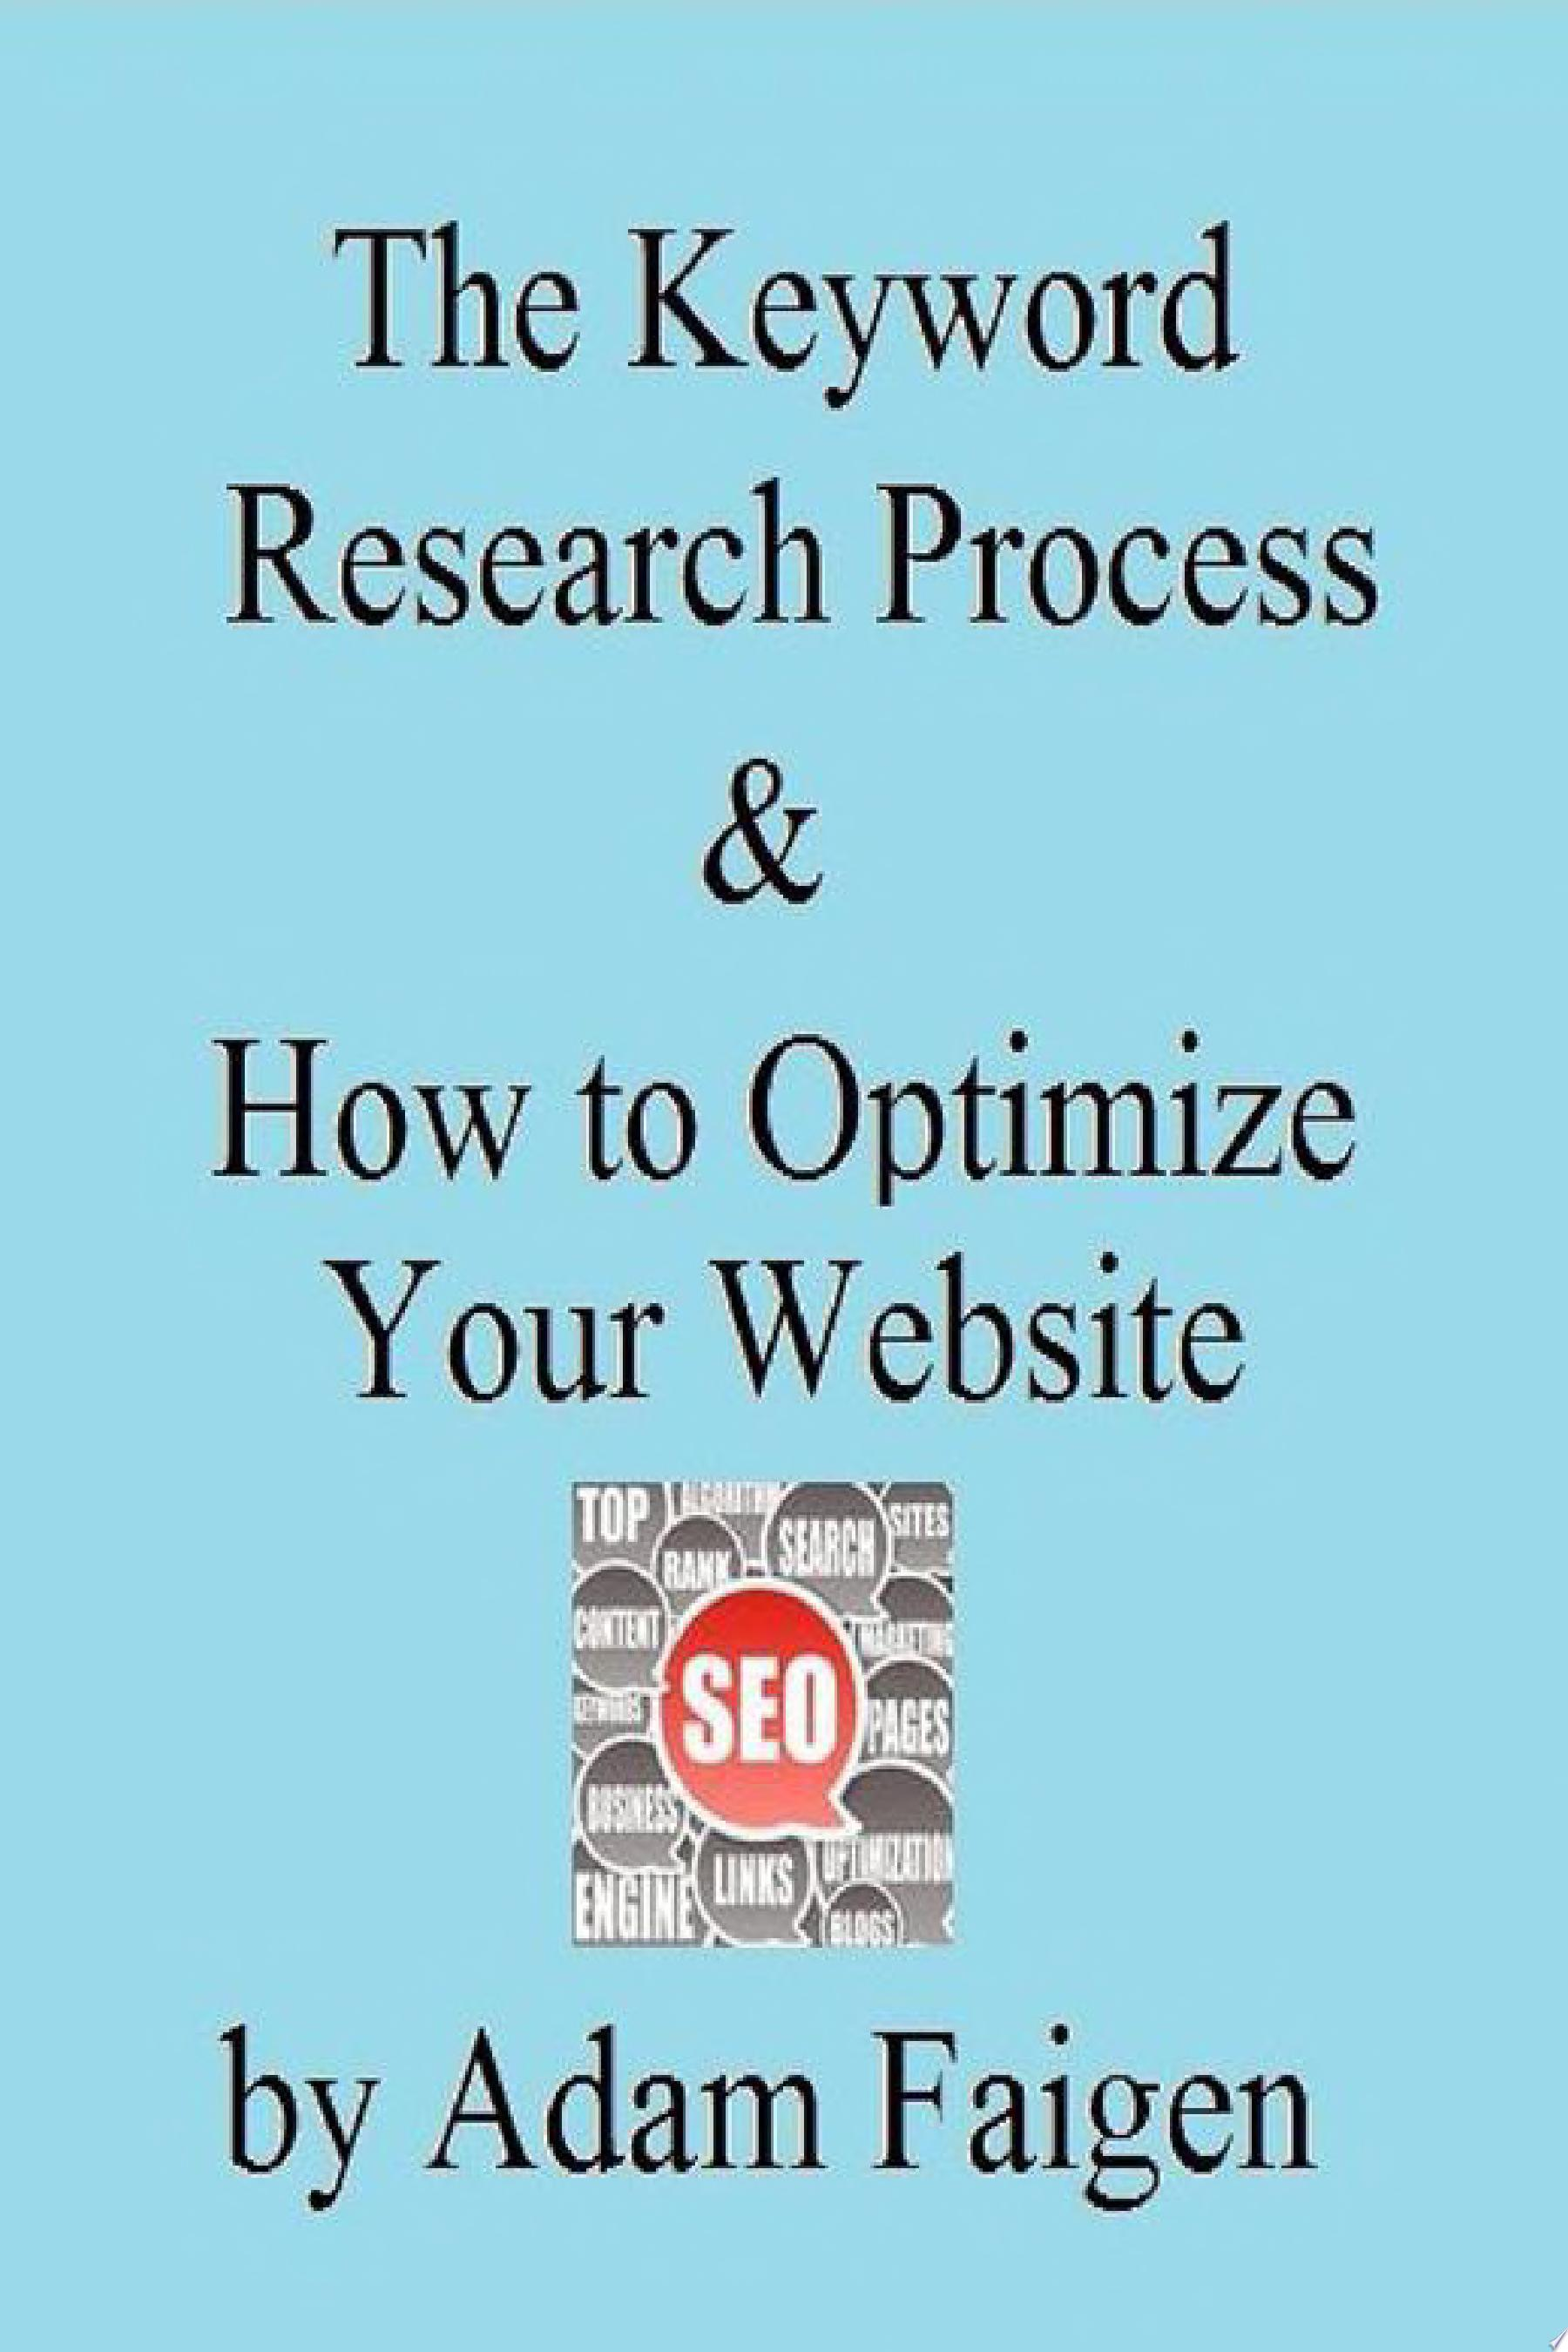 The Keyword Research Process and How to Optimize Your Website